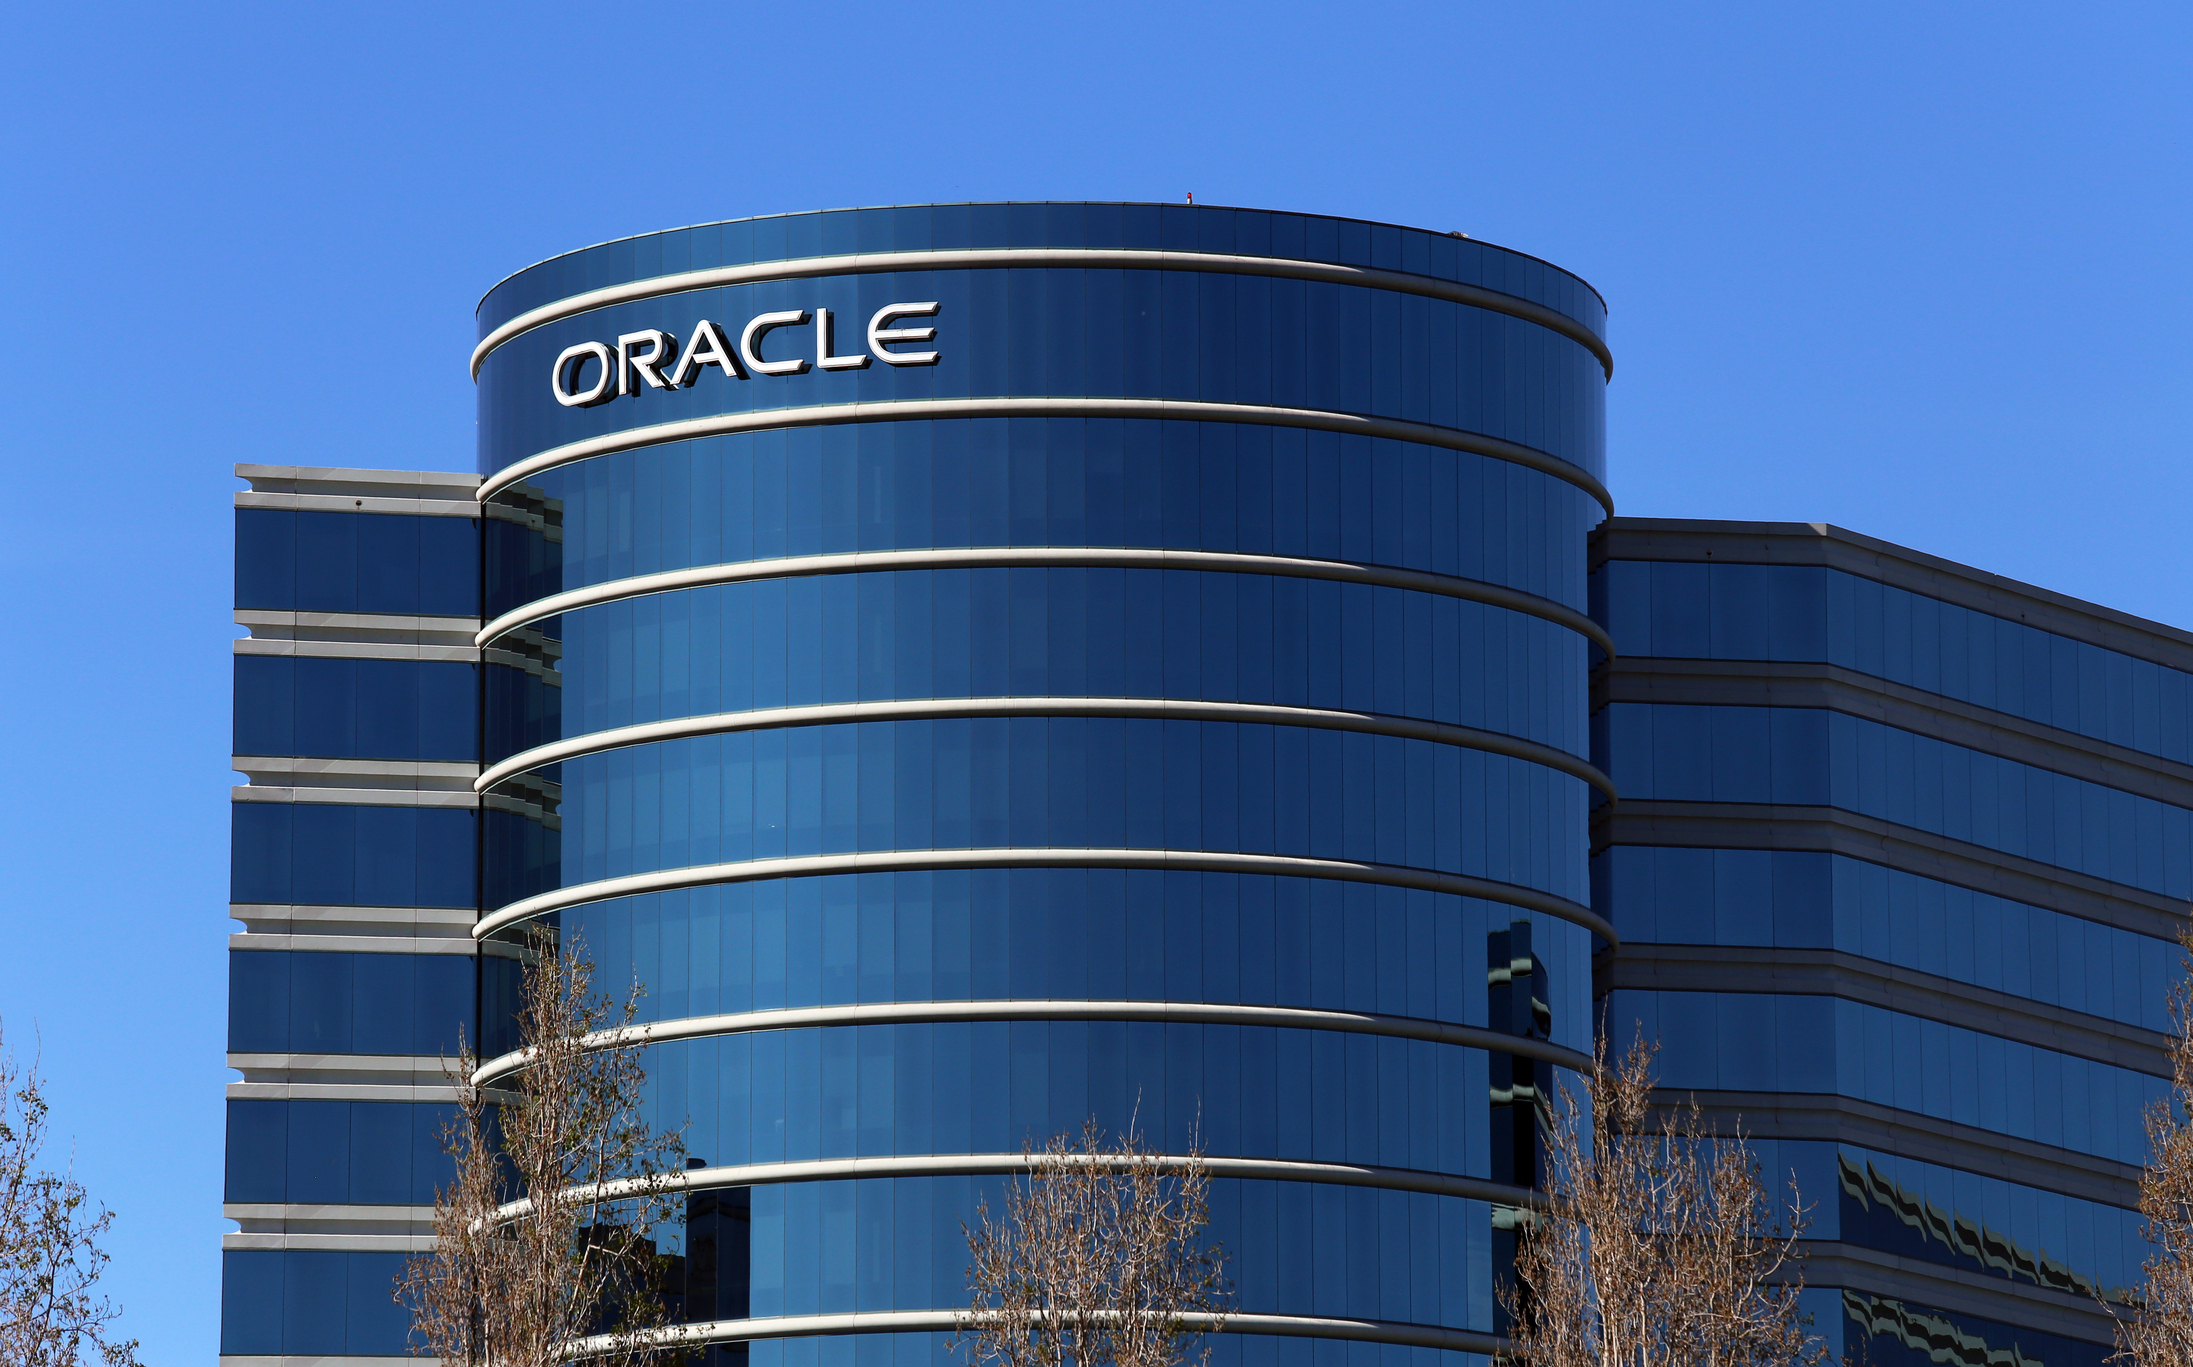 Dating ring co-founders of oracle corporation